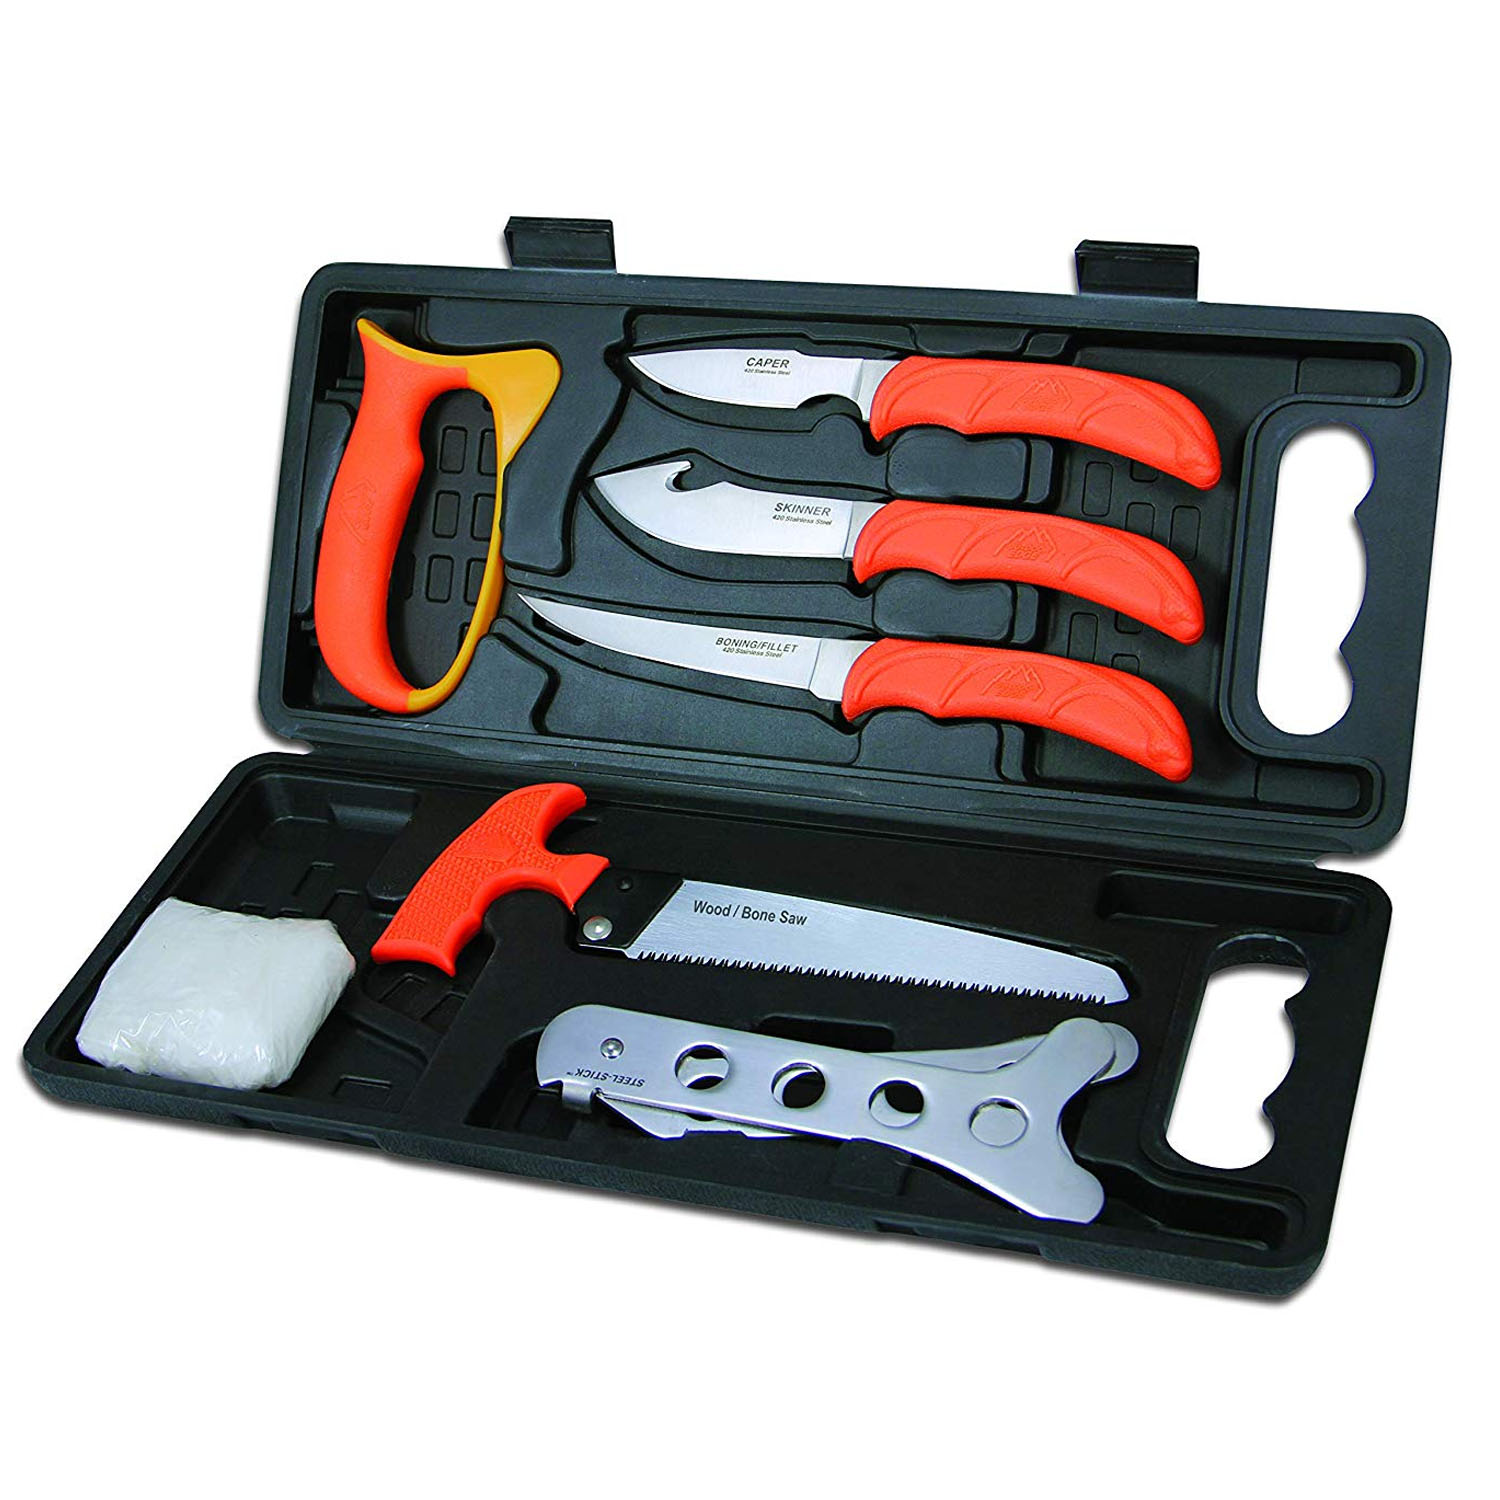 Hunting Skinning Bone Saw Slaughter Knives Utility Set 6 Pieces with Hard Case